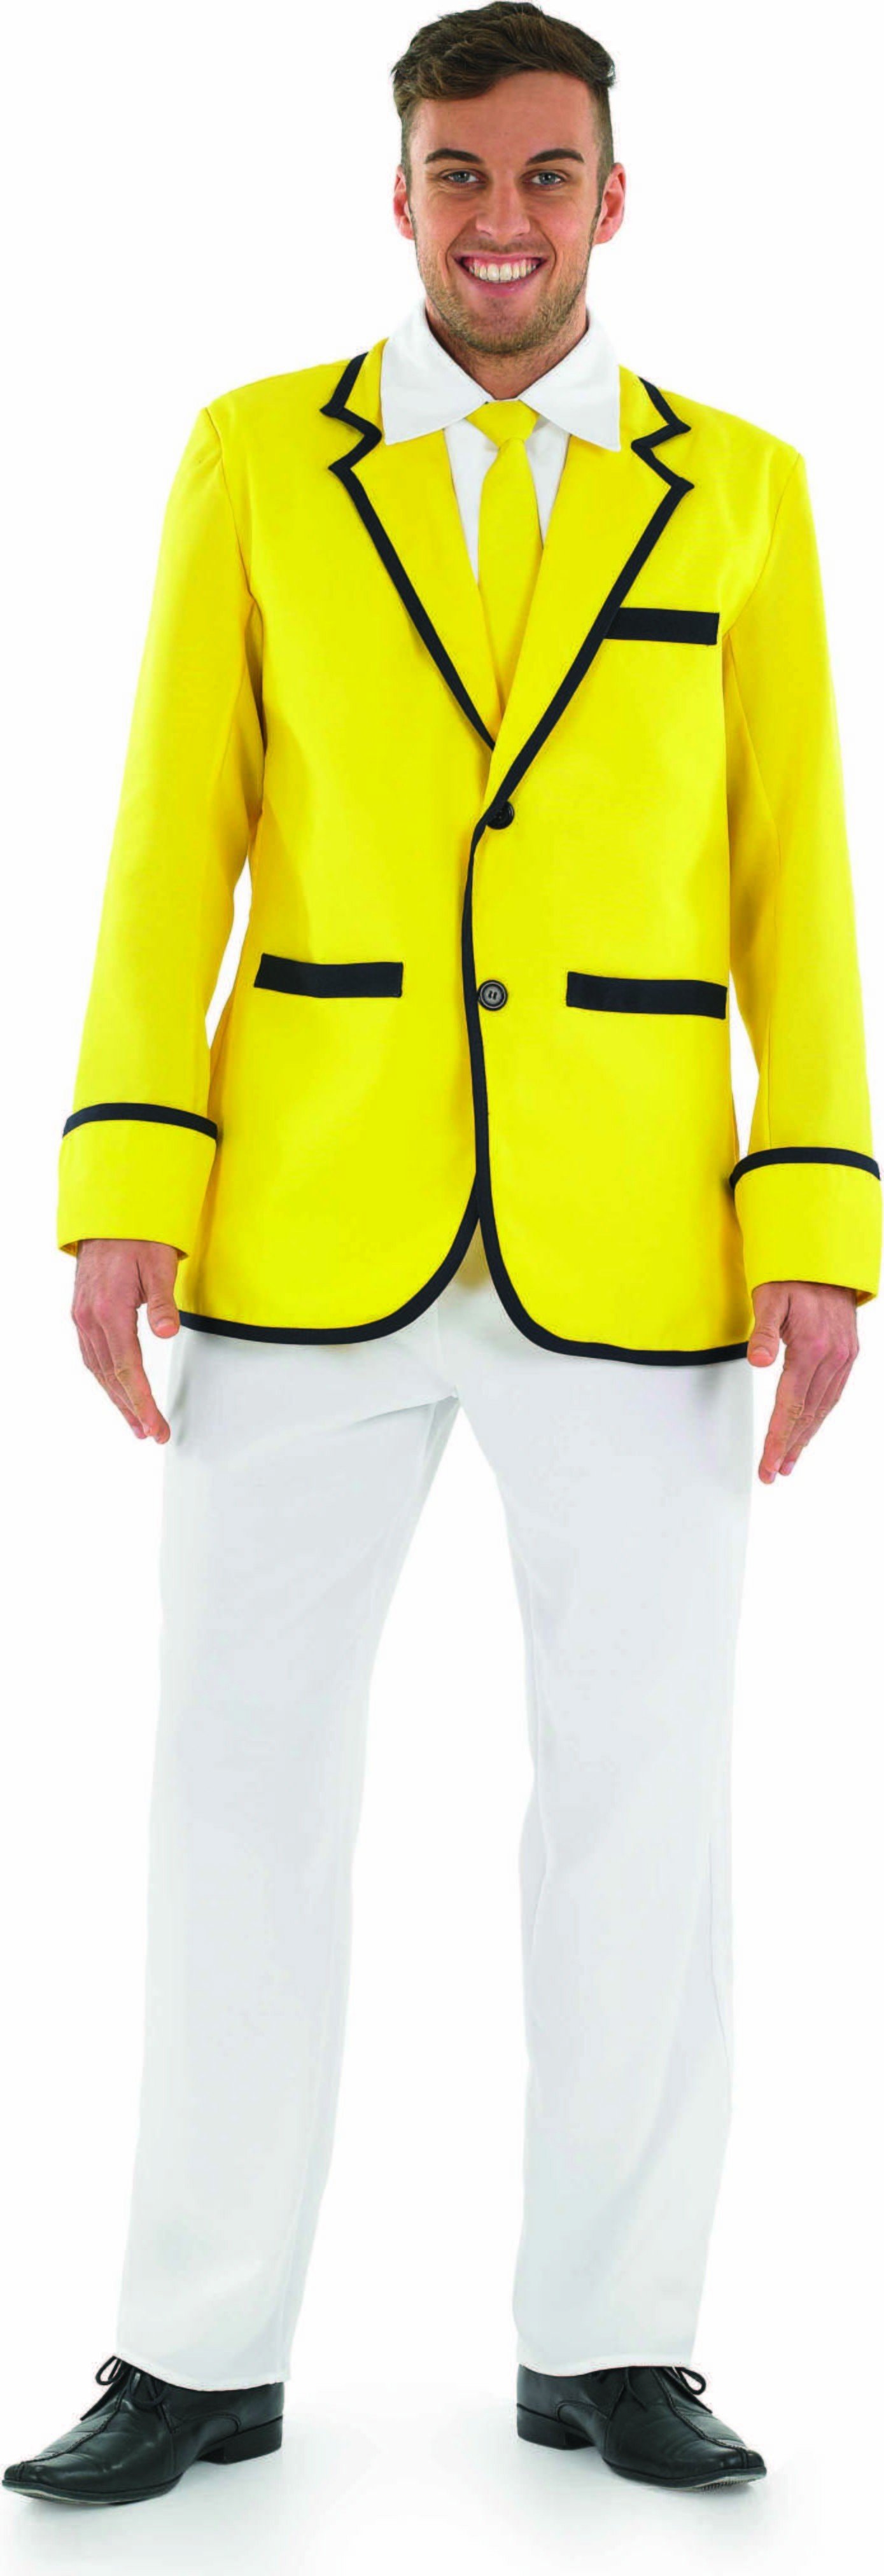 Mens Male Holiday Camp Entertainer Holidaycamp (Yellow, White)